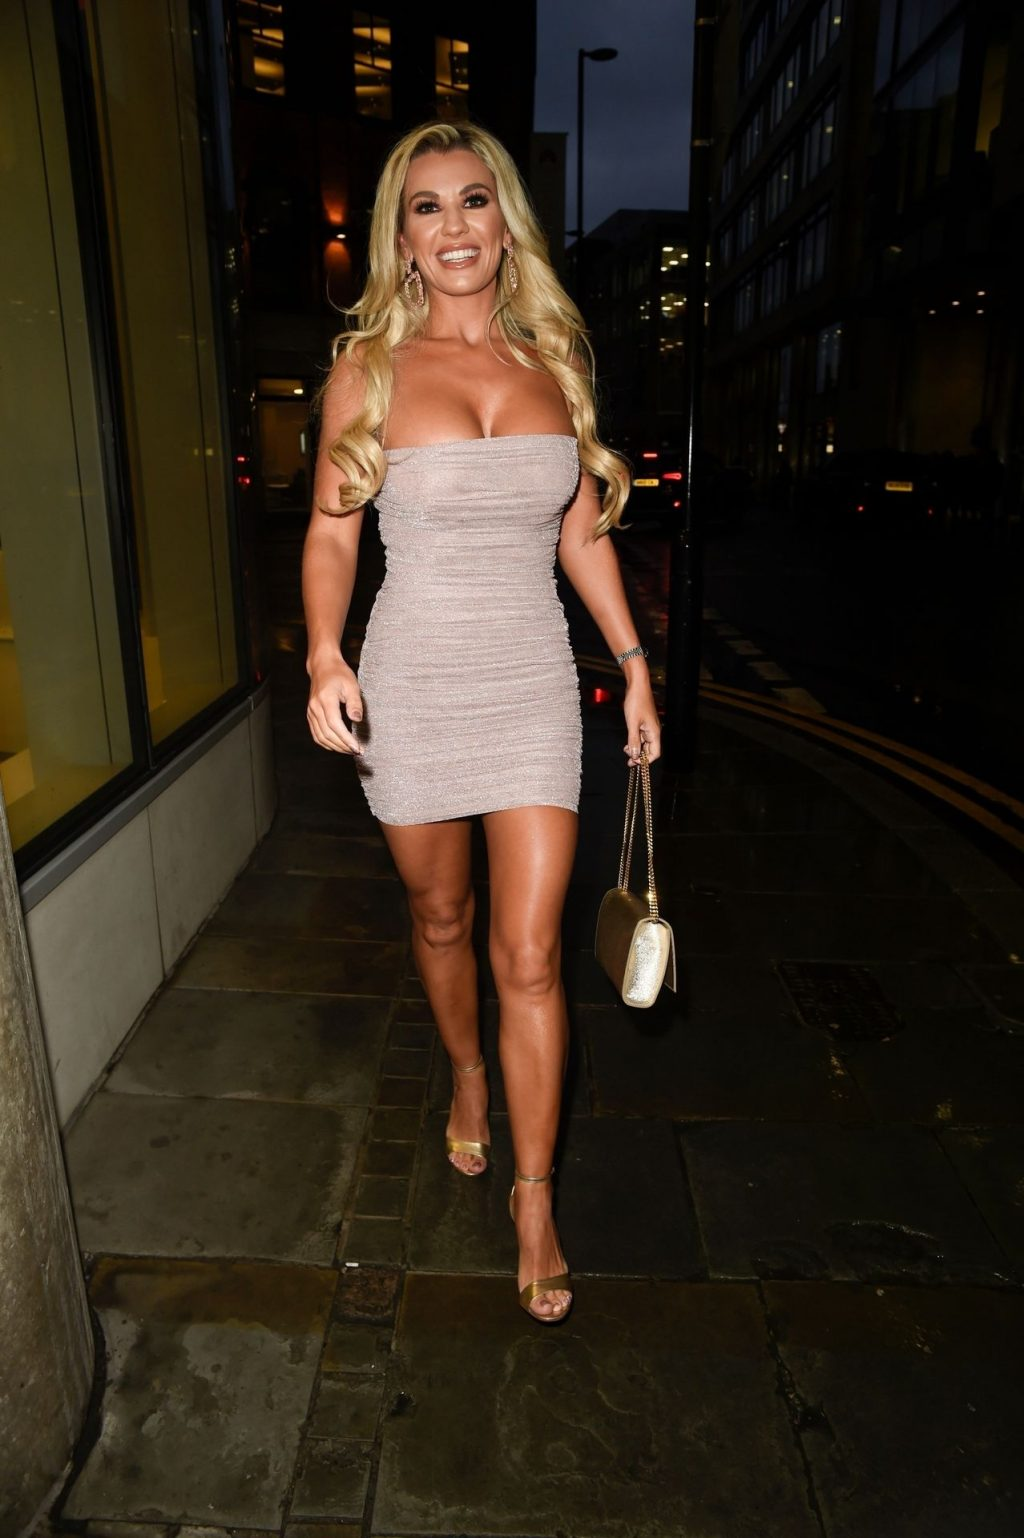 British Model Christine McGuinness Joins Real Housewives Of Cheshire Filming (45 Photos)